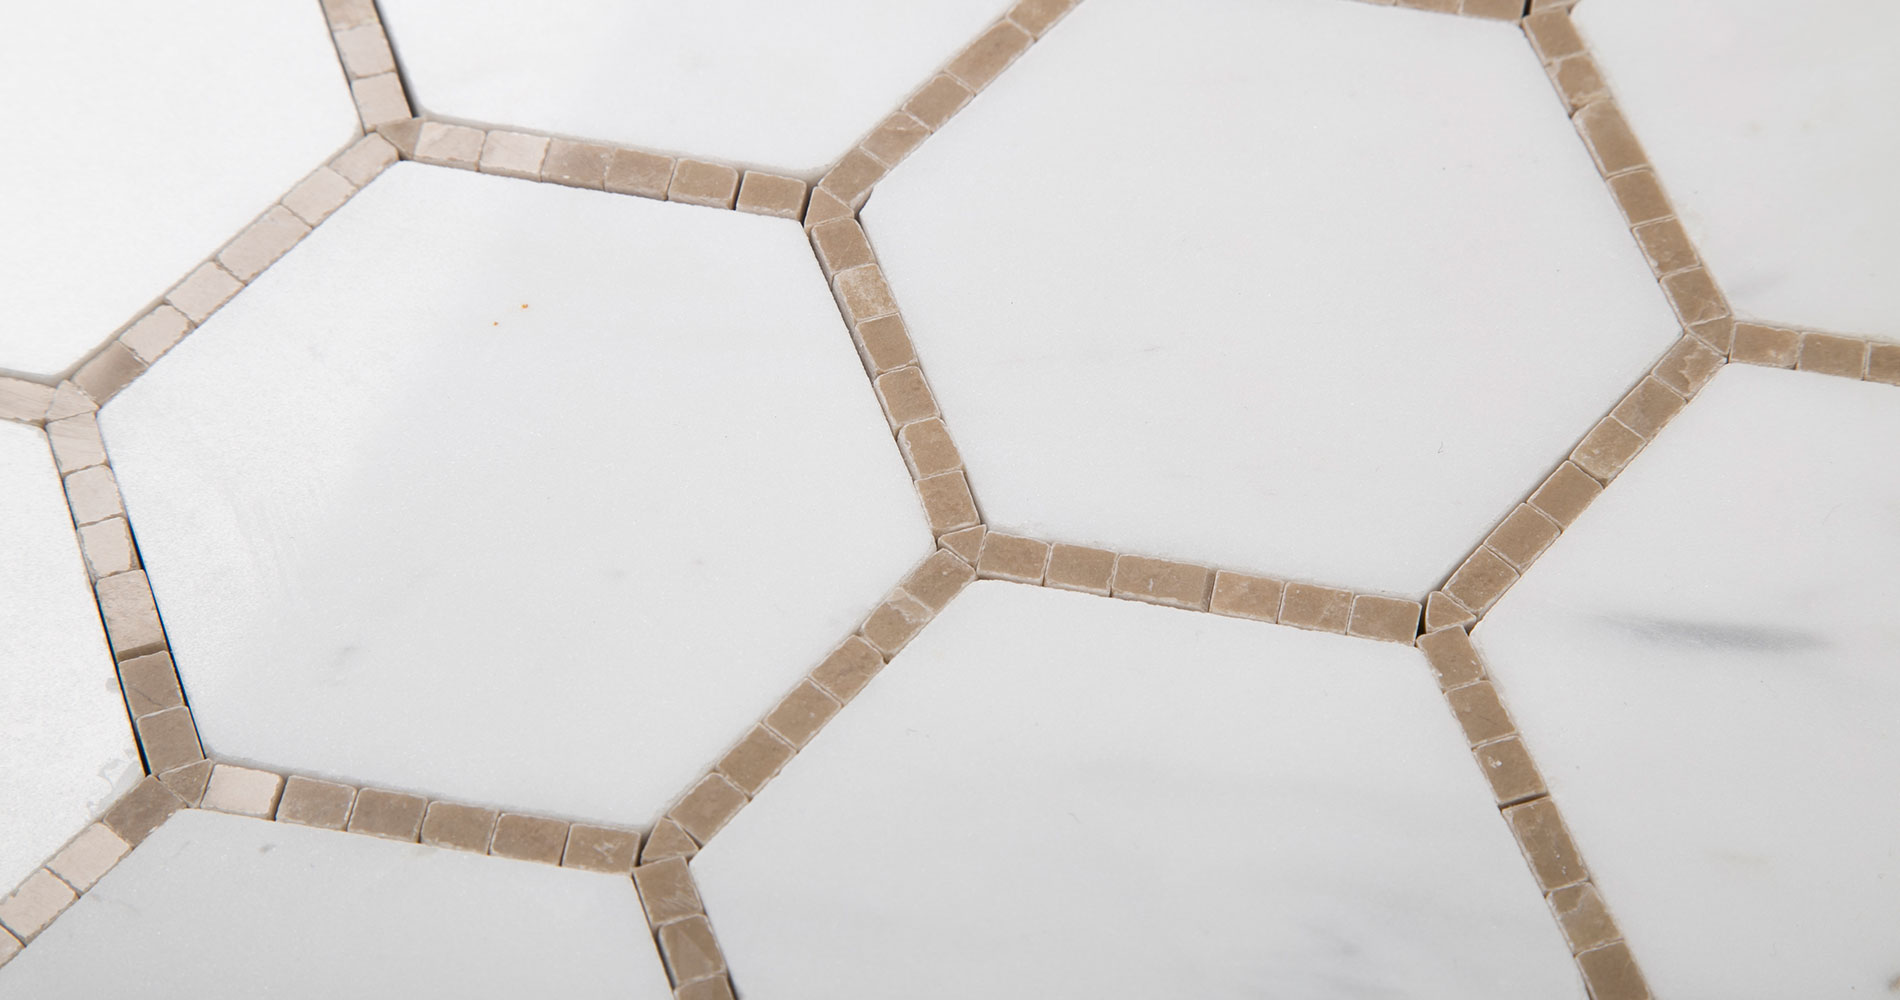 centurymosaic-3-inch-Hexagon-Marble-Mosaic-Tile-Collection-6